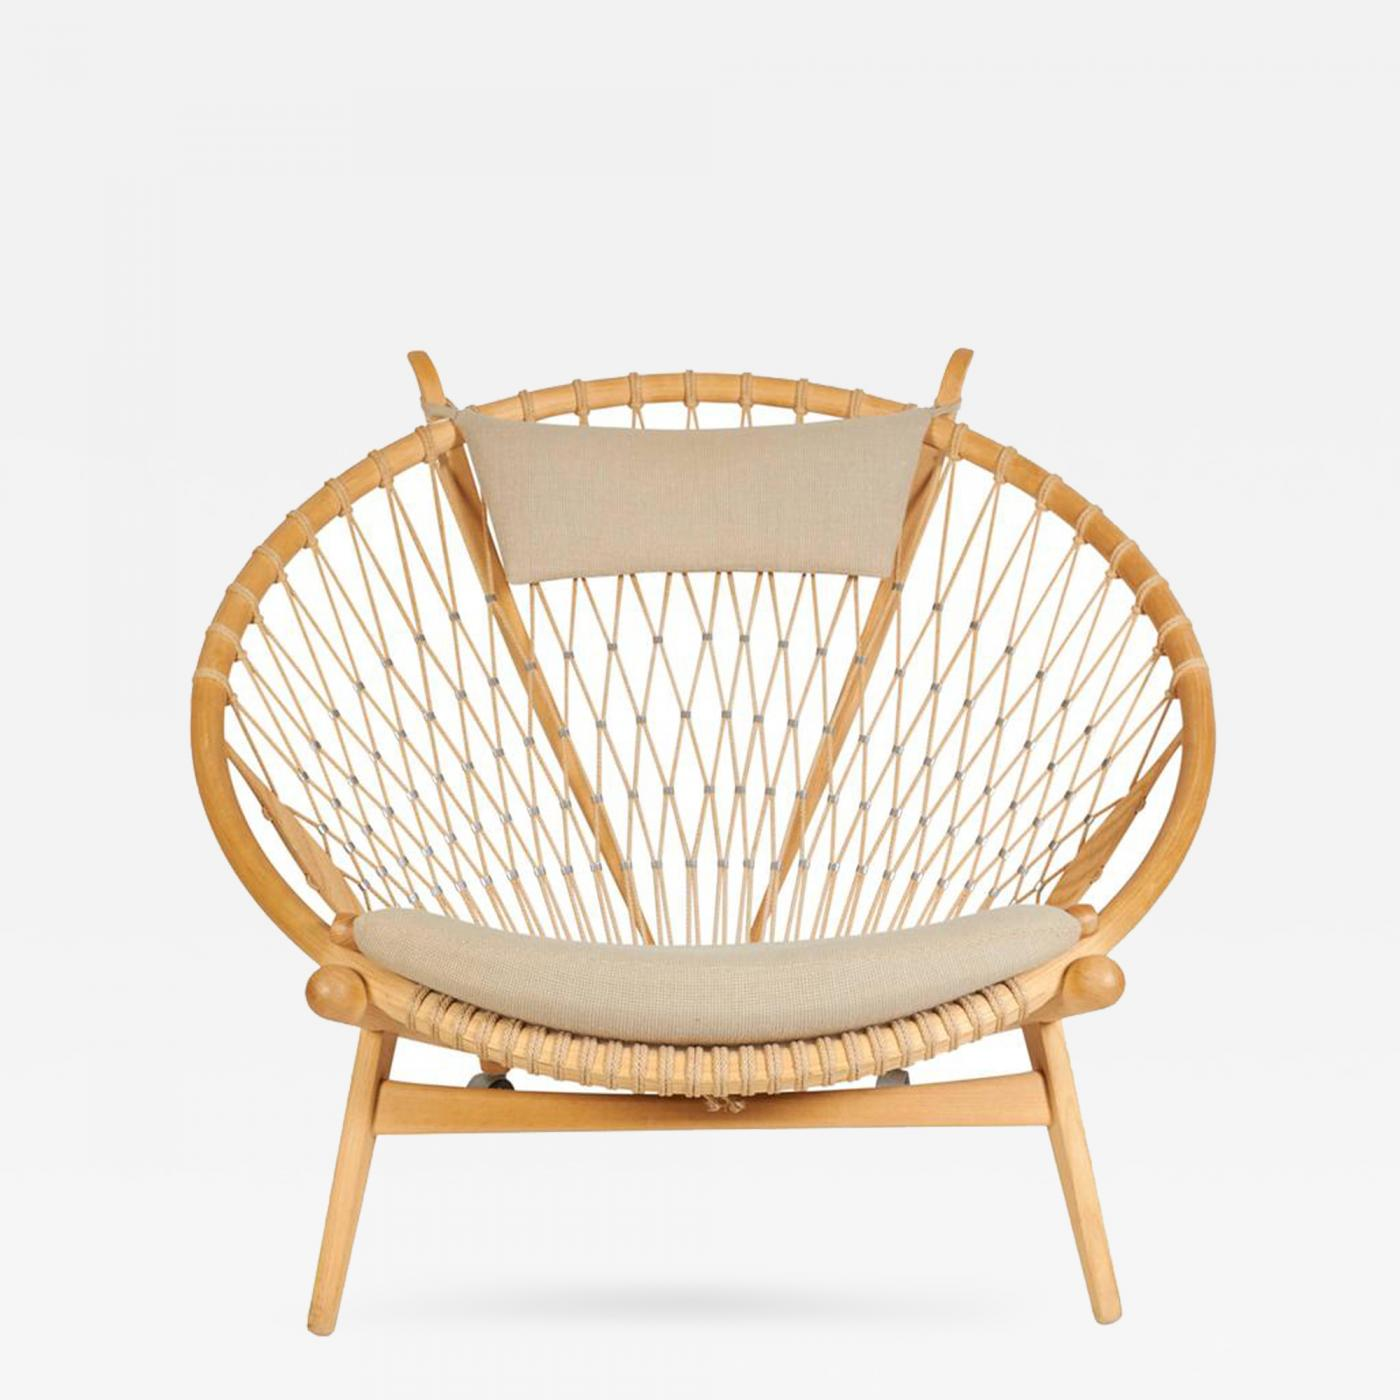 hans wegner the hoop chair by hans j wegner. Black Bedroom Furniture Sets. Home Design Ideas